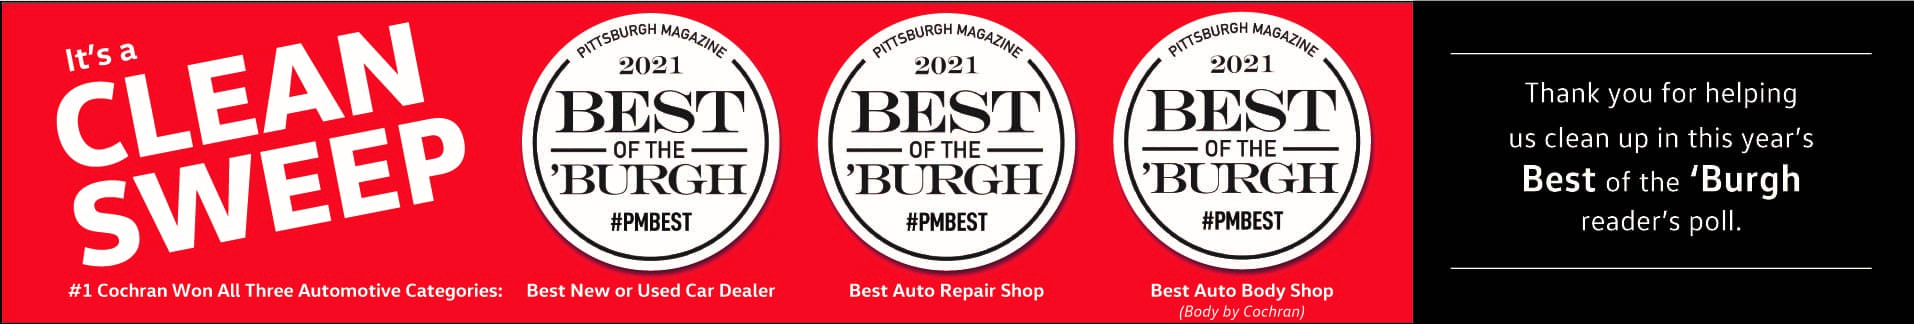 May 2021 Best of the Burgh – Homepage Banners_VW